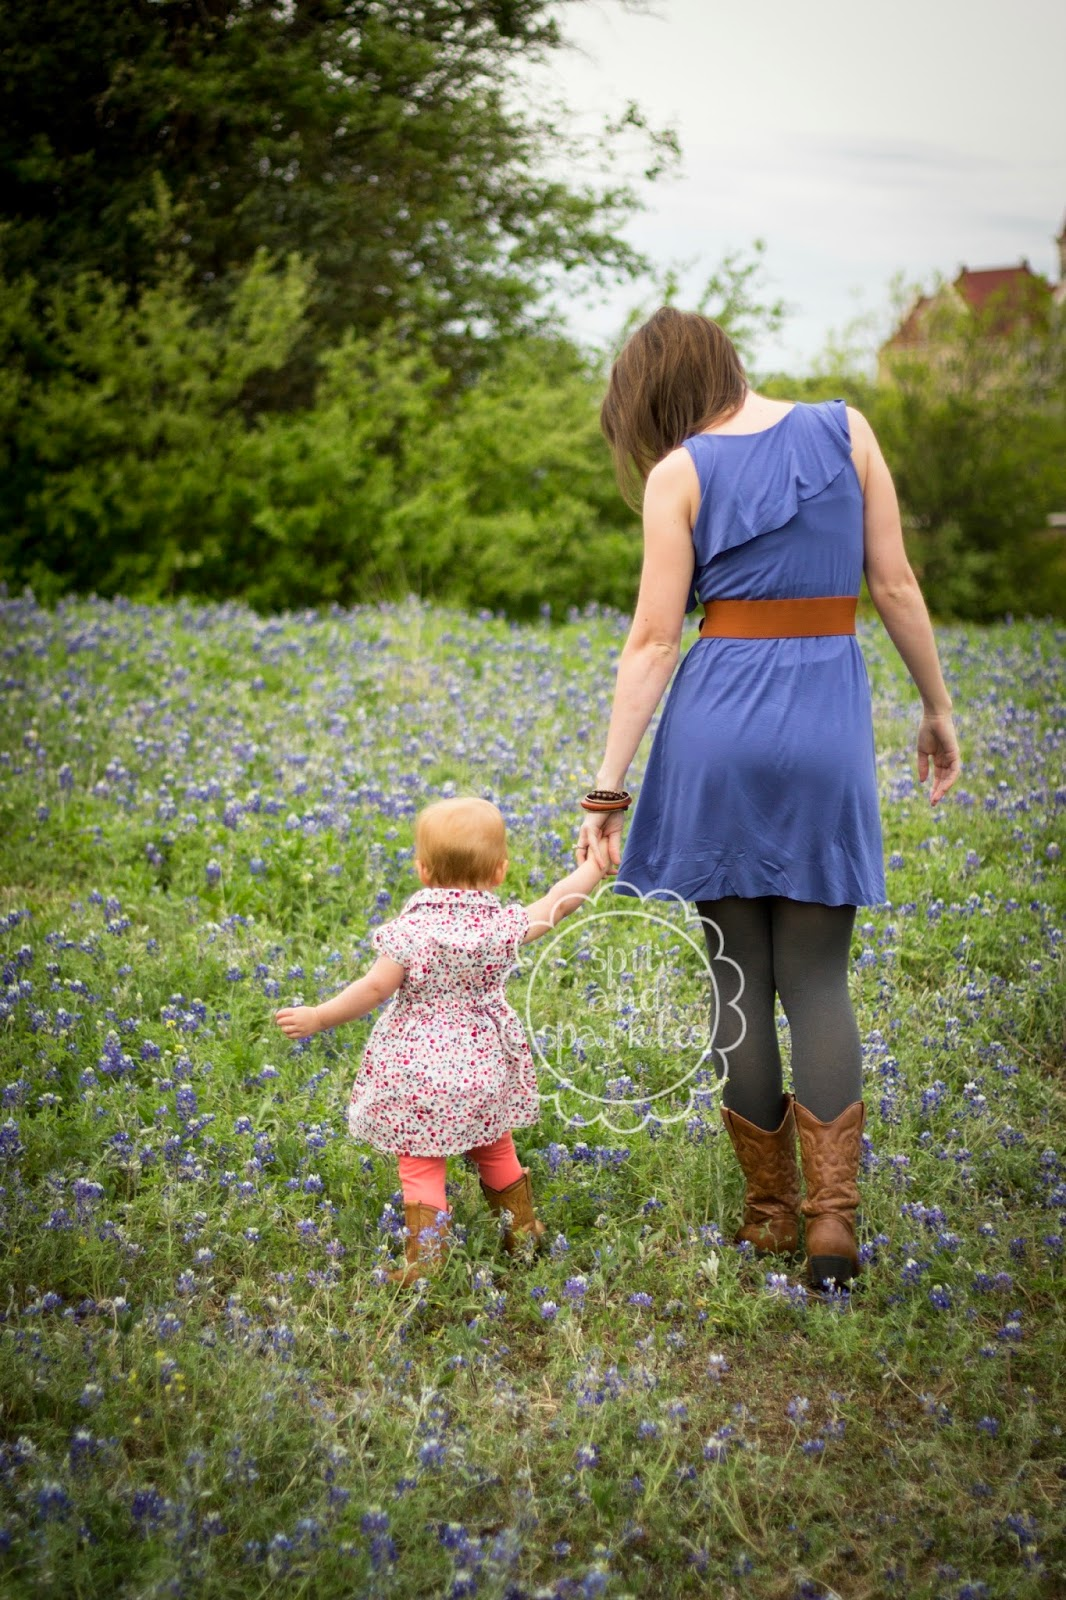 "Can you imagine how you would feel if your mom or dad had never told you how beautiful you are? ""Tell her she is pretty"" blog post via Spit and Sparkles Blog #beauty #loveyourself #confidence #daughter"